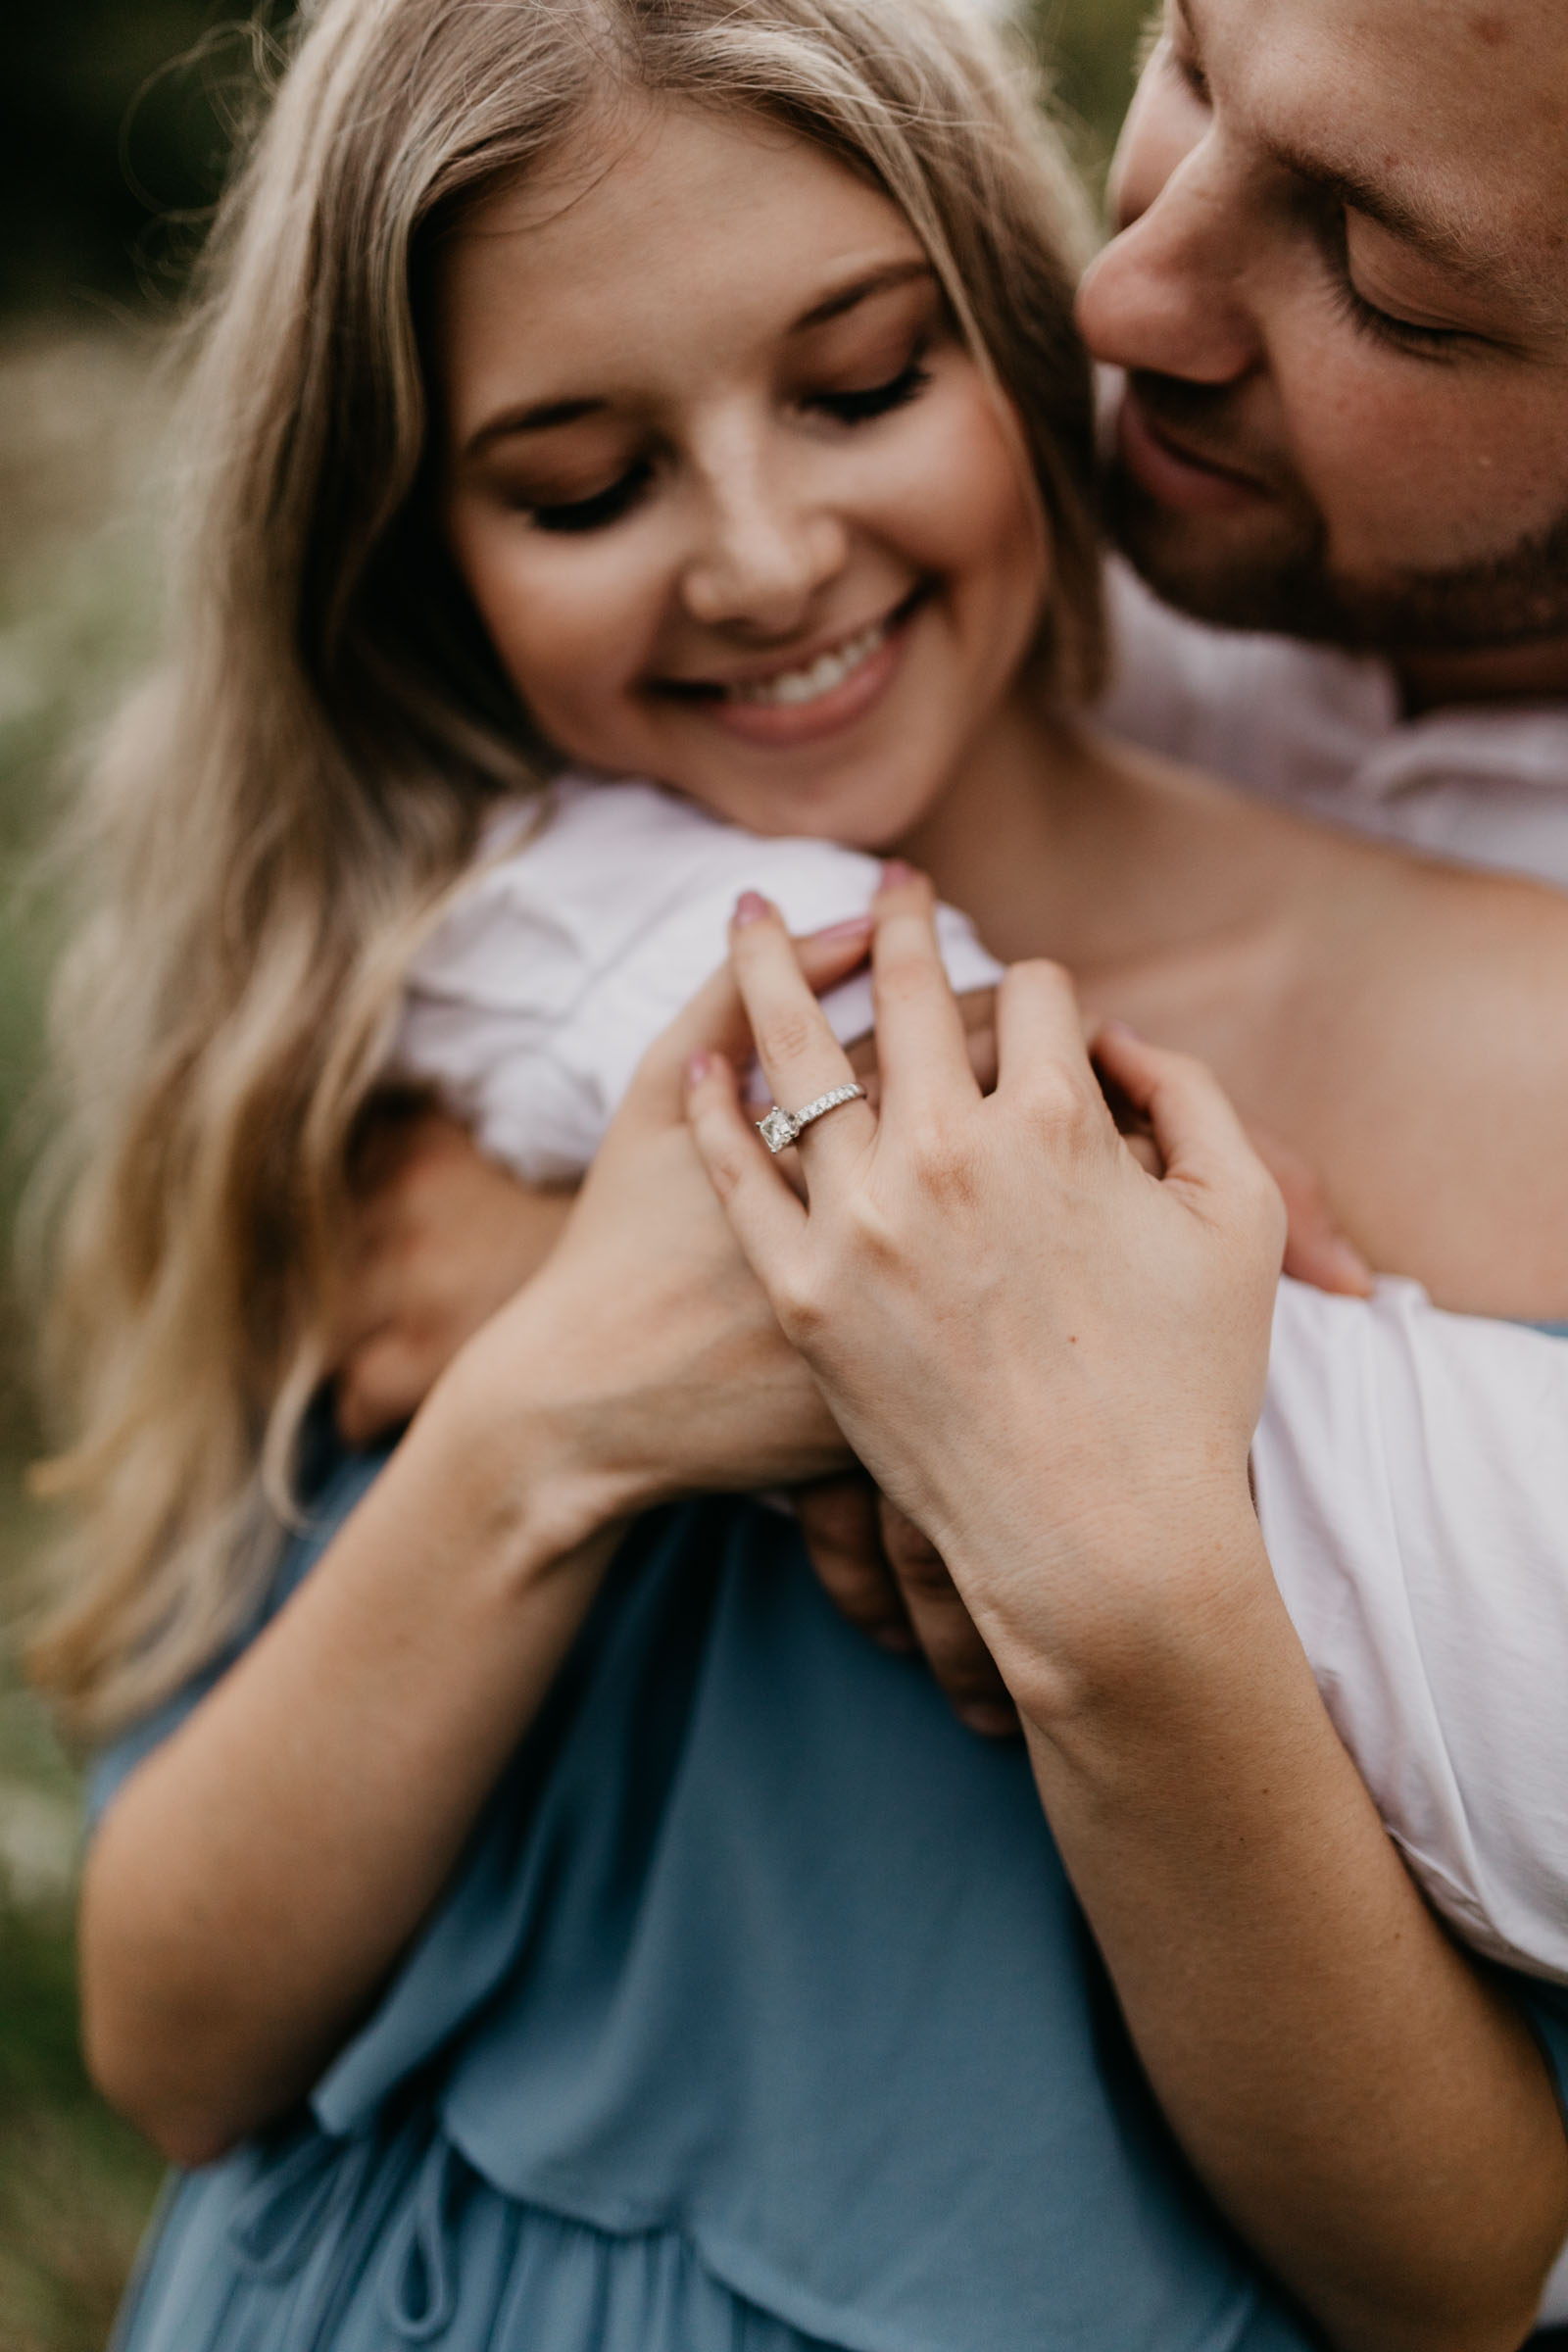 beautiful engagement ring being shown off by adorable couple during their fall photo session